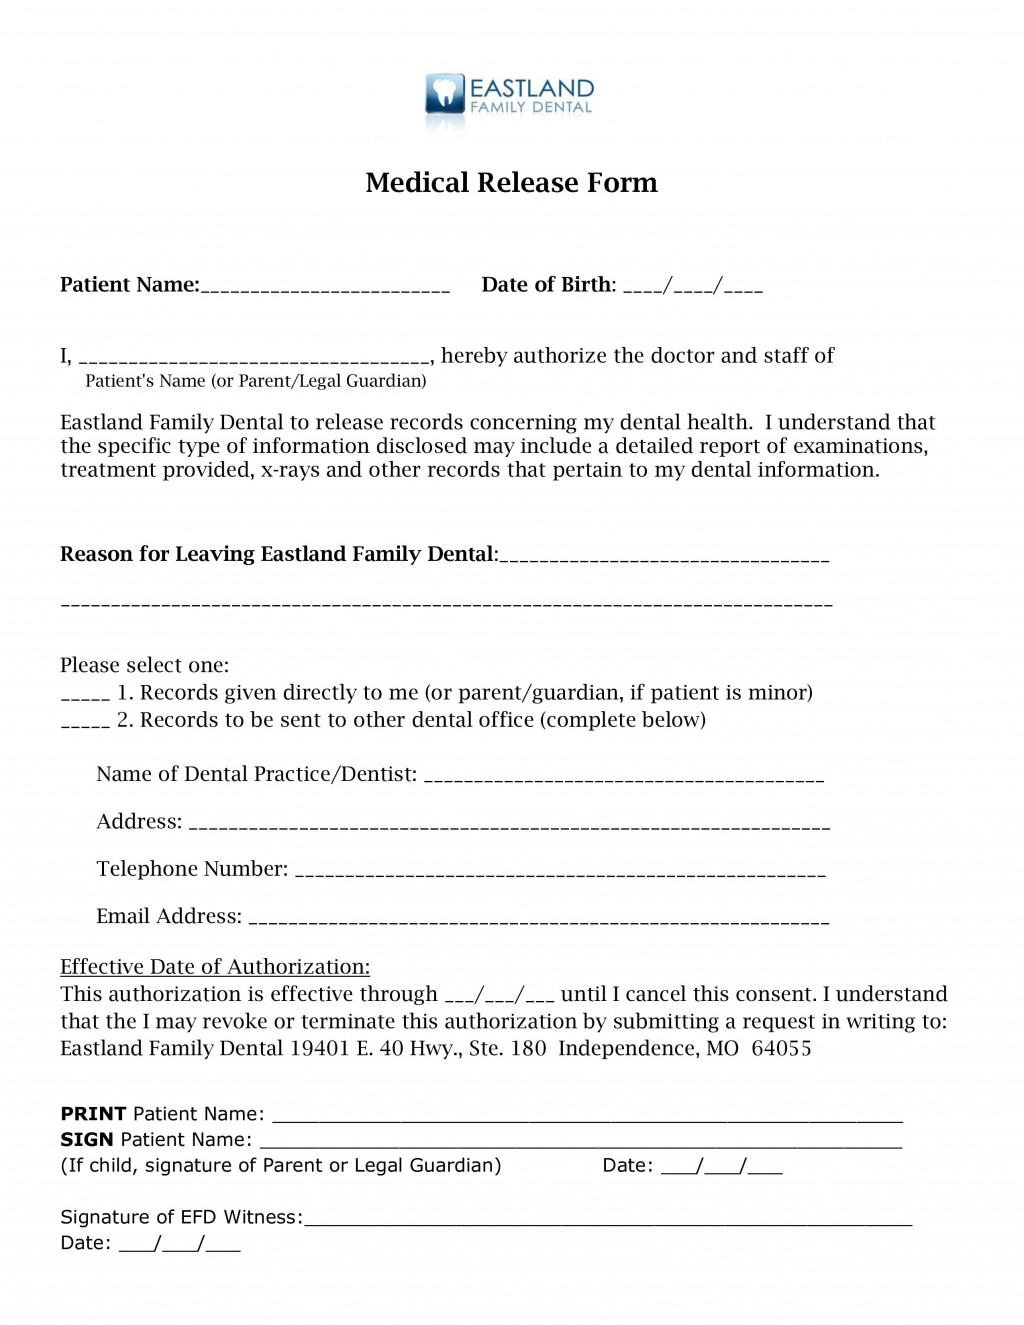 001 Unbelievable Medical Release Form Template Example  Free Consent Uk For MinorLarge